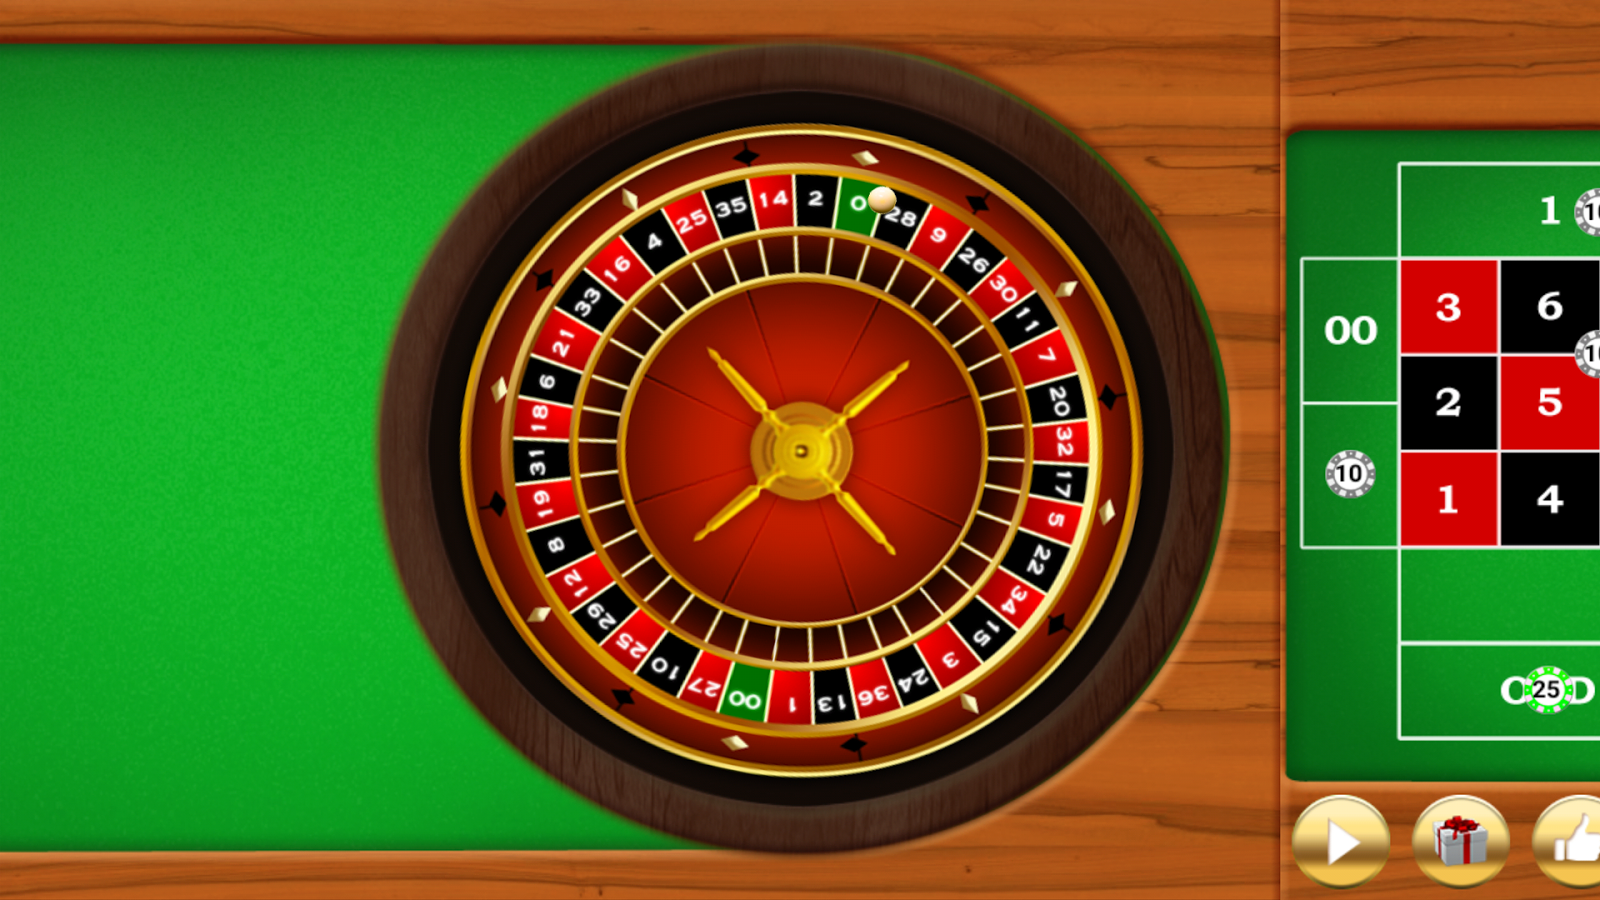 What Does Roulette Mean